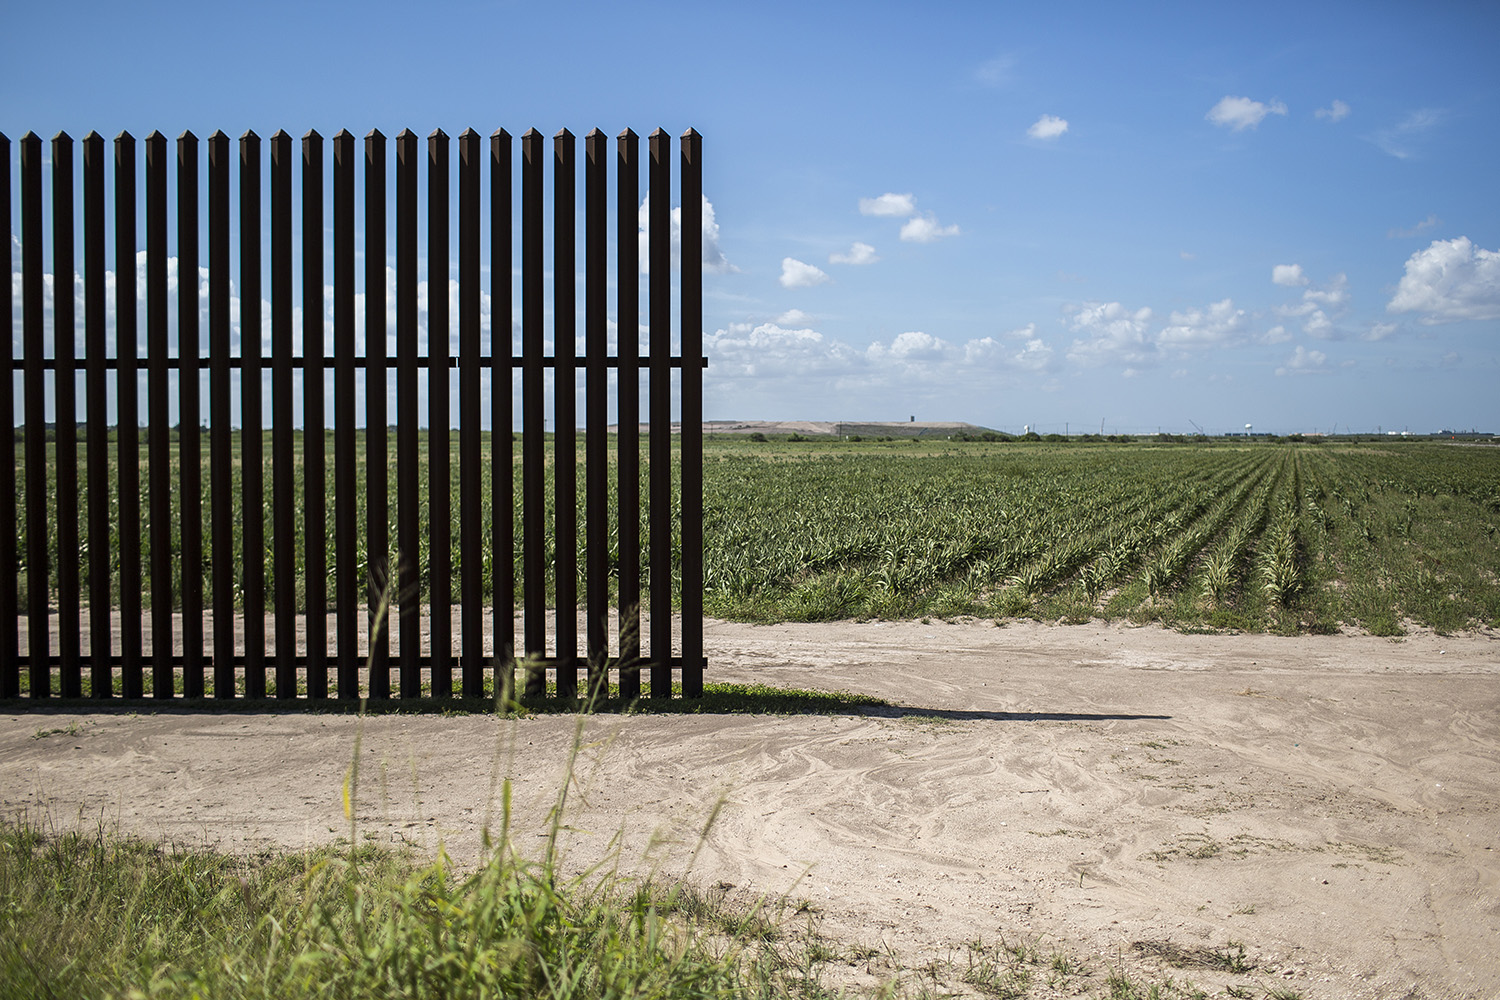 The end of a segment of border wall just east of Oklahoma Ave. on Aug. 11, 2017.